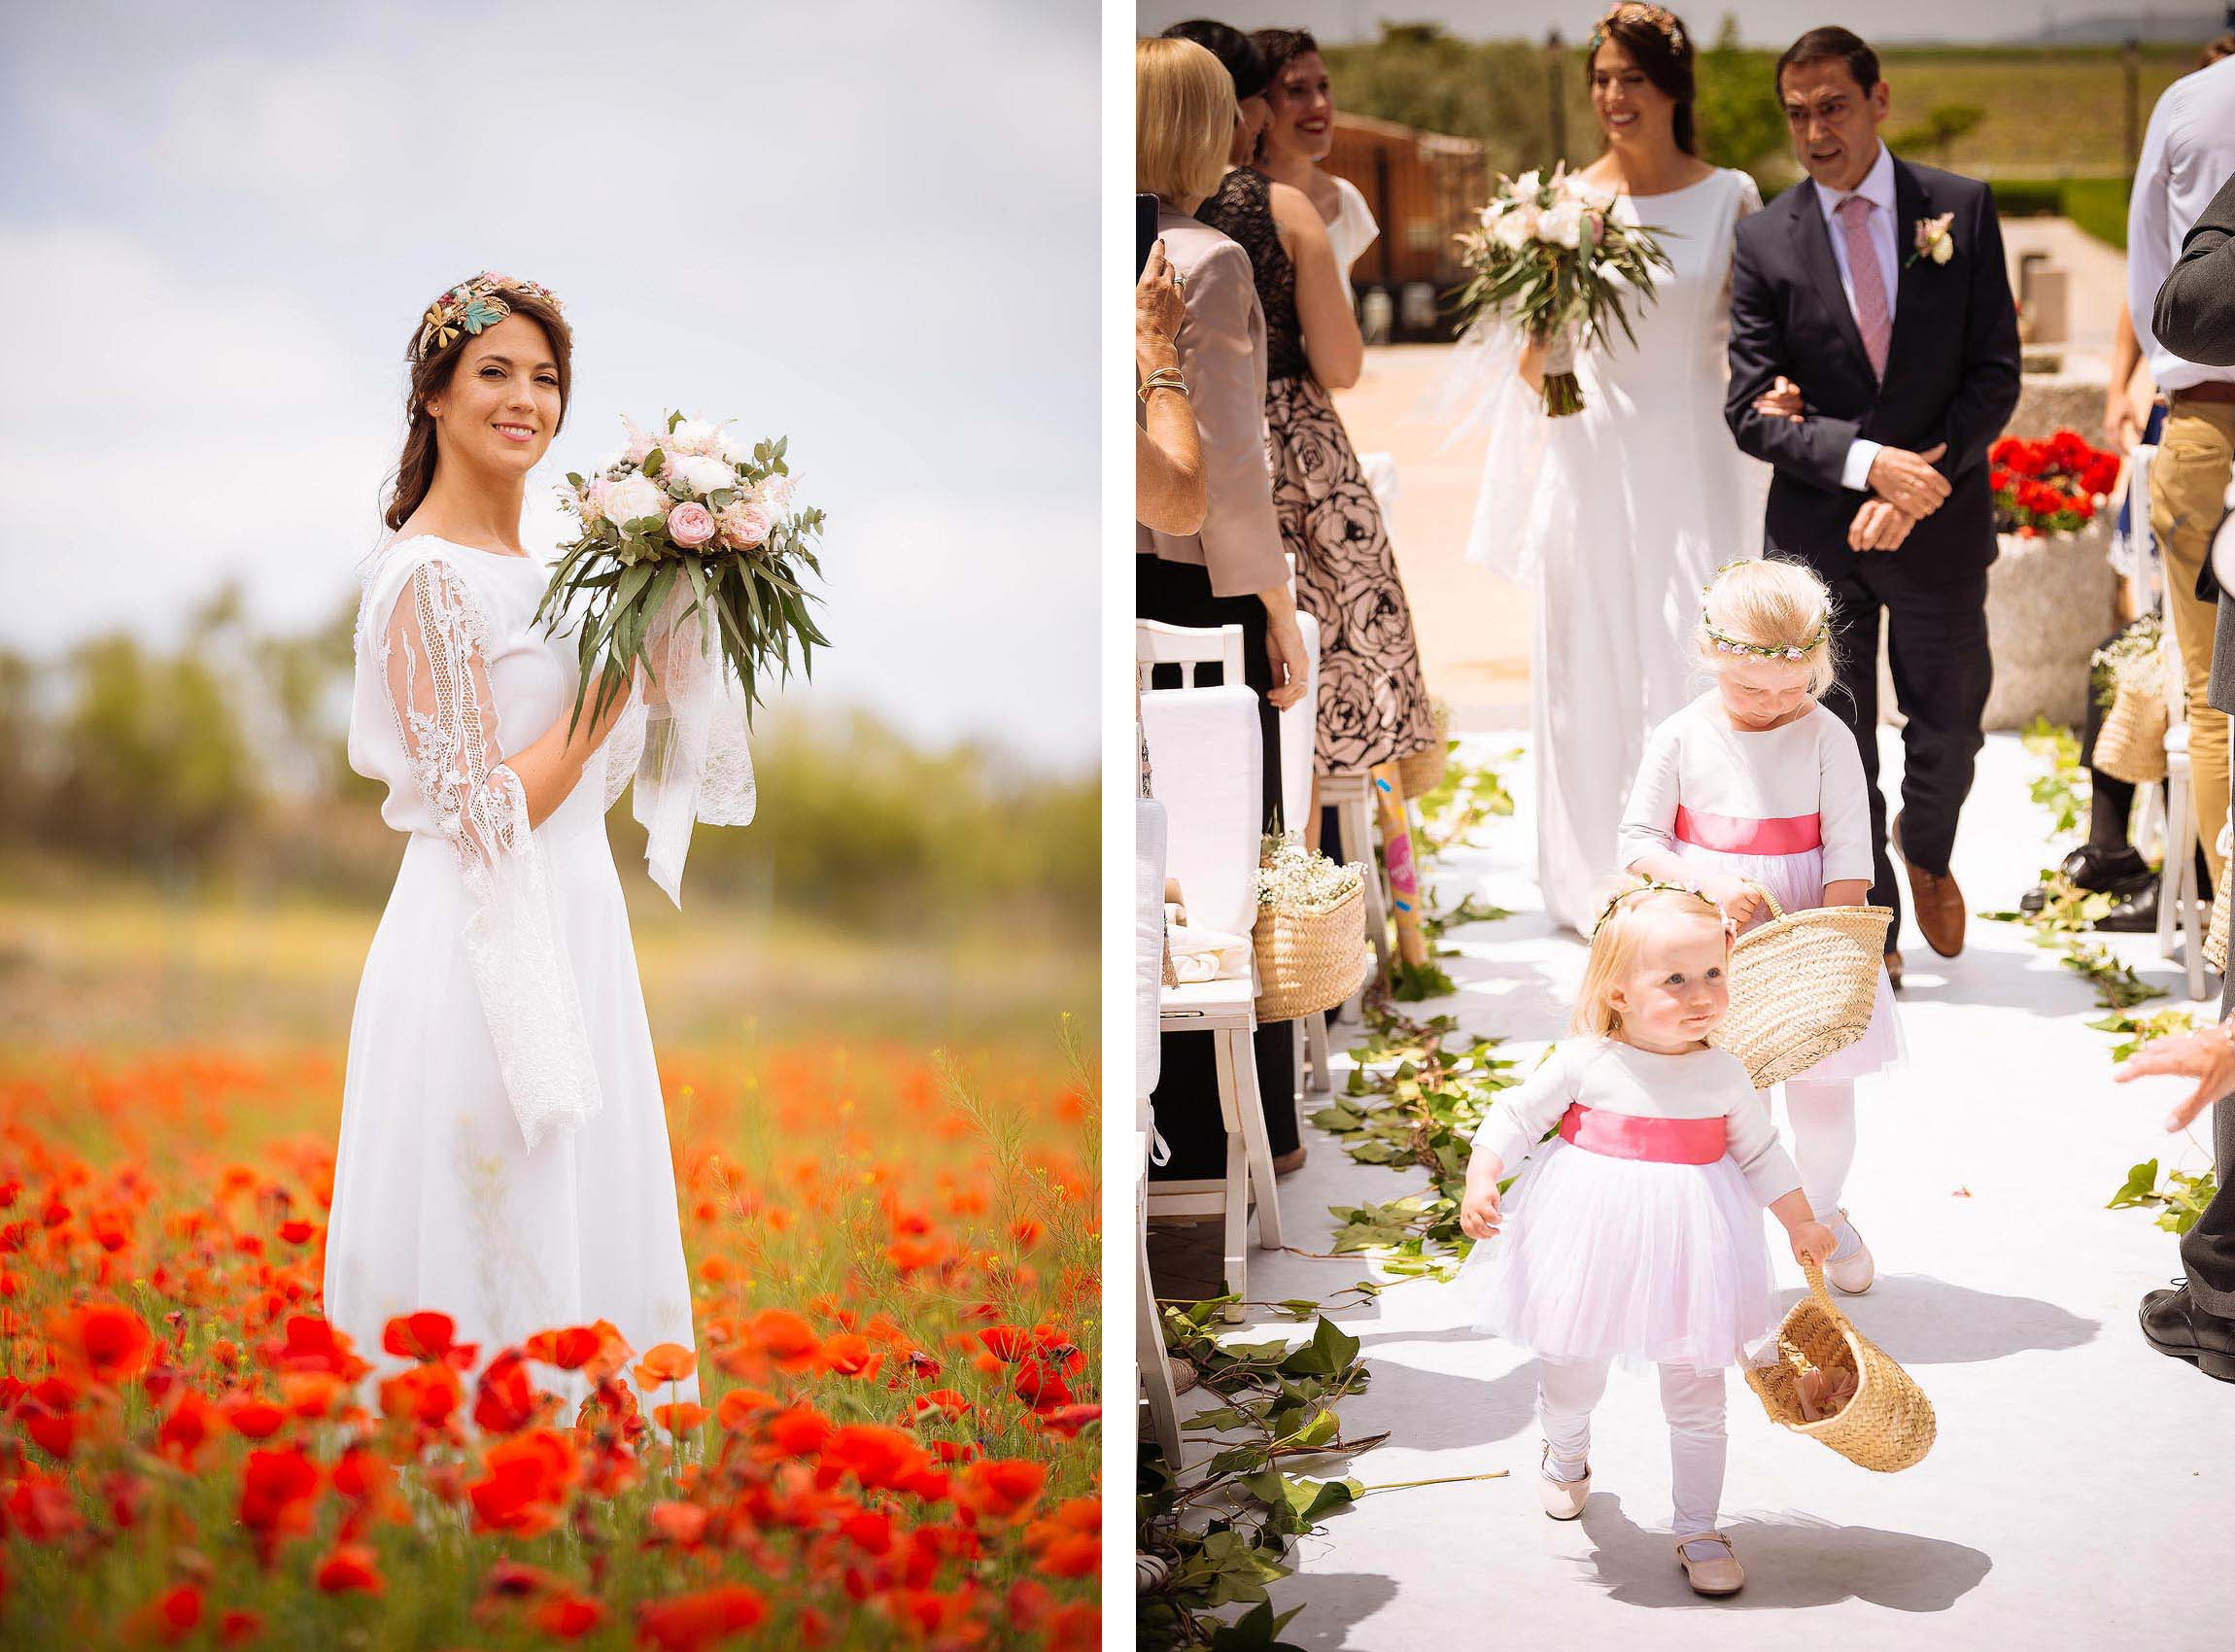 bride-spanish-maria-standing-poppy-field-wedding-day-flower